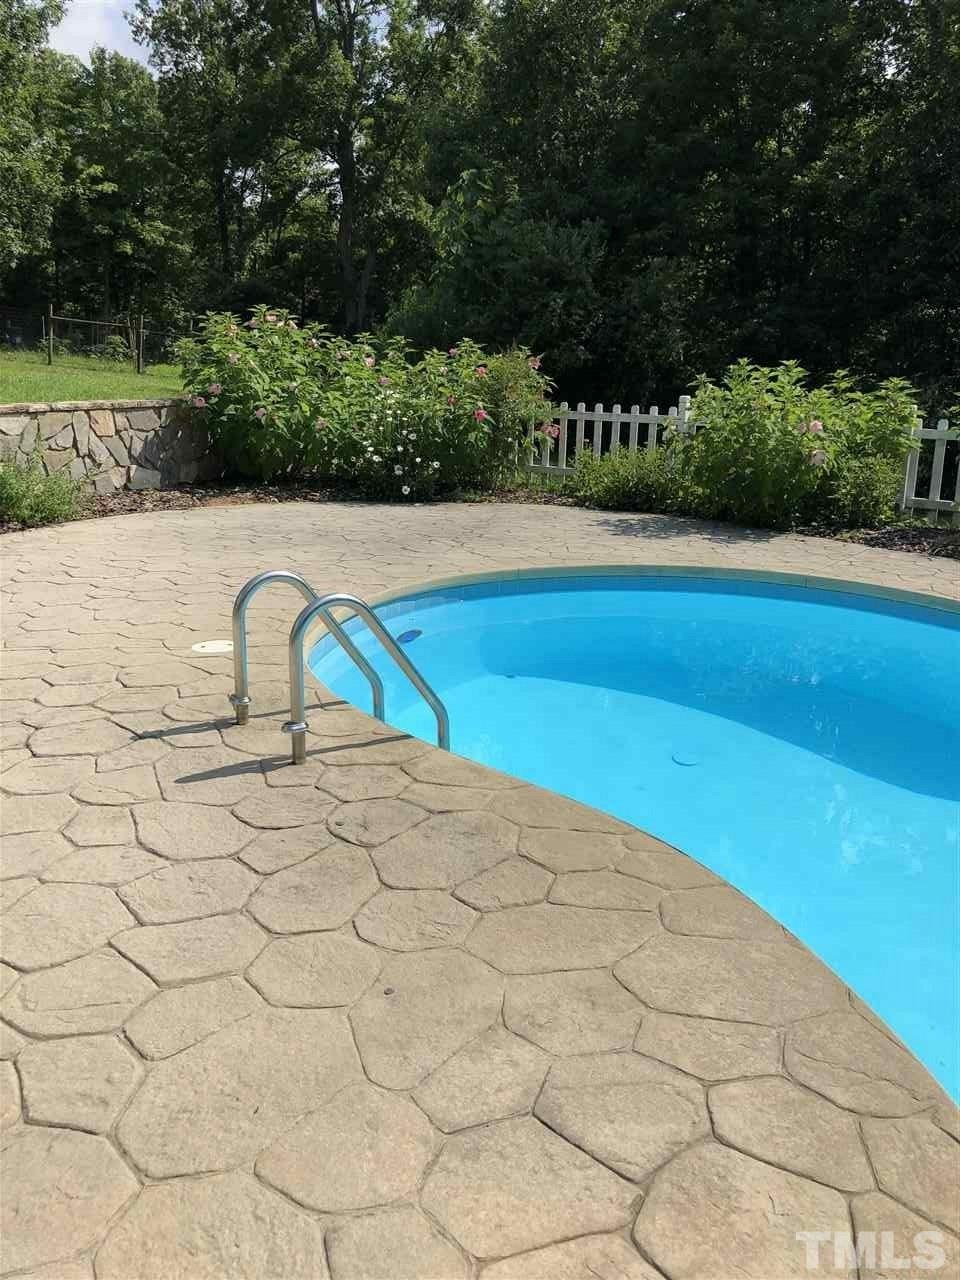 Cool off from the summer heat in your own back yard pool